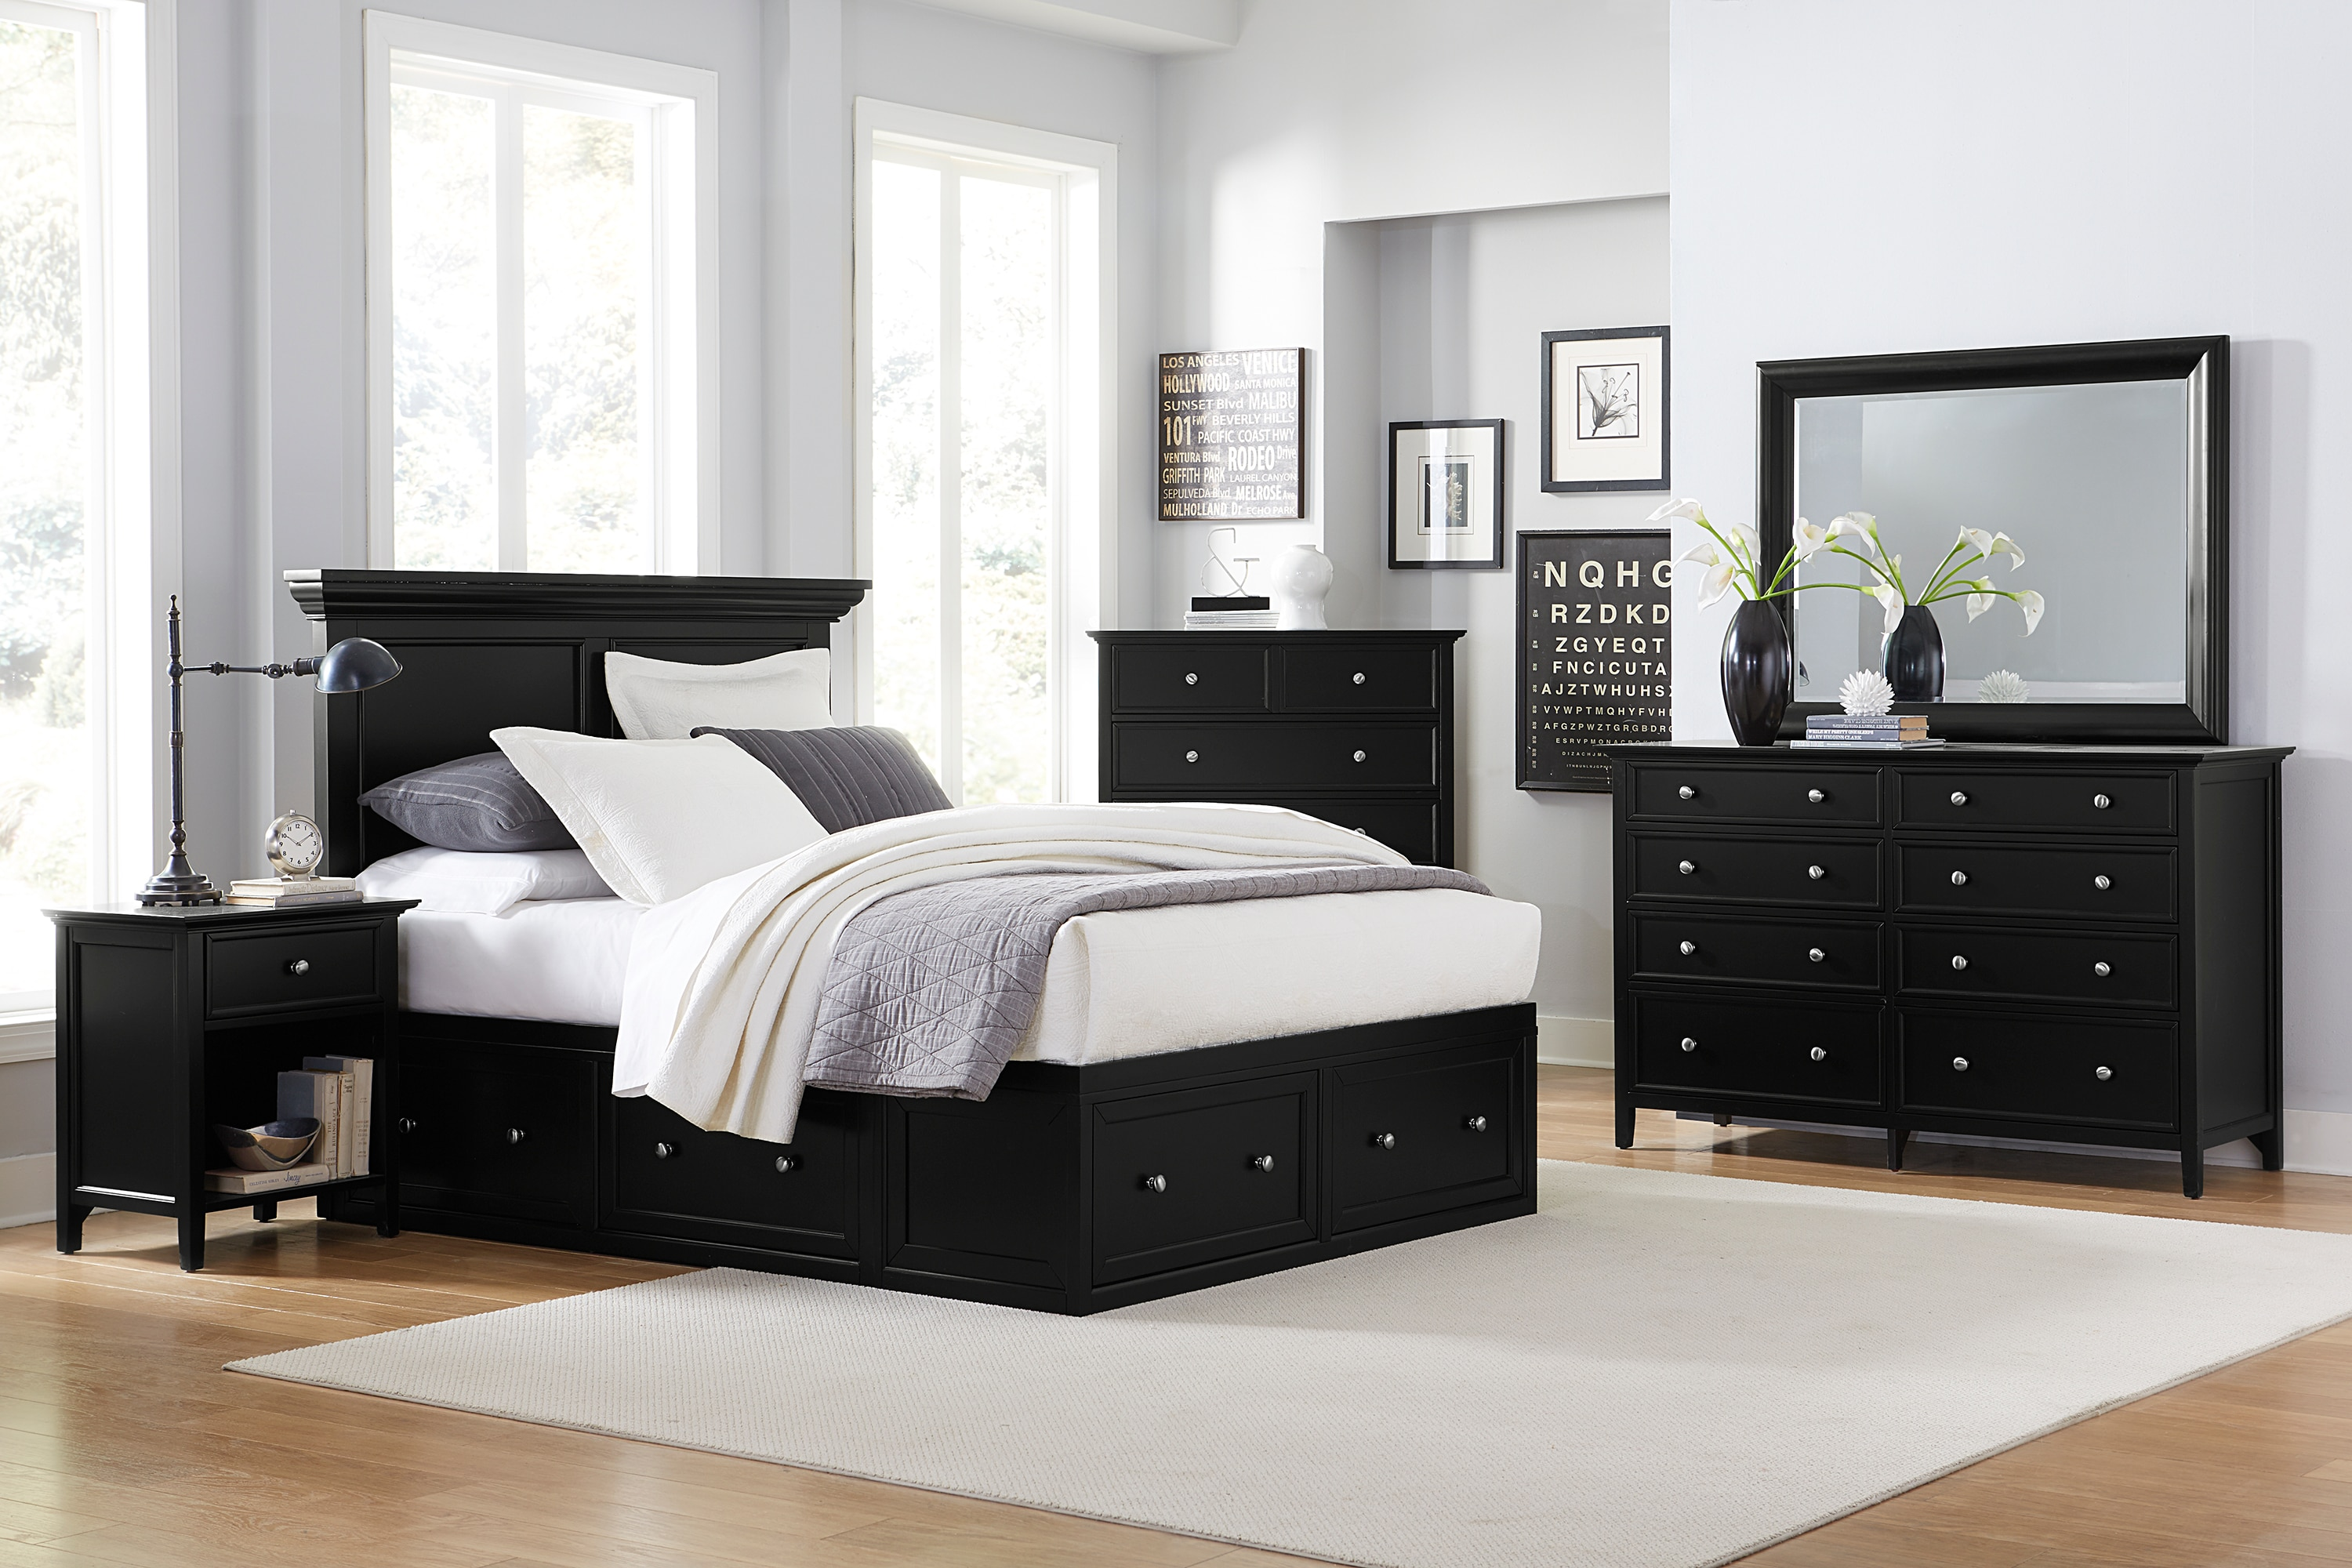 Ellsworth 4-Piece King Storage Bedroom Set - Black